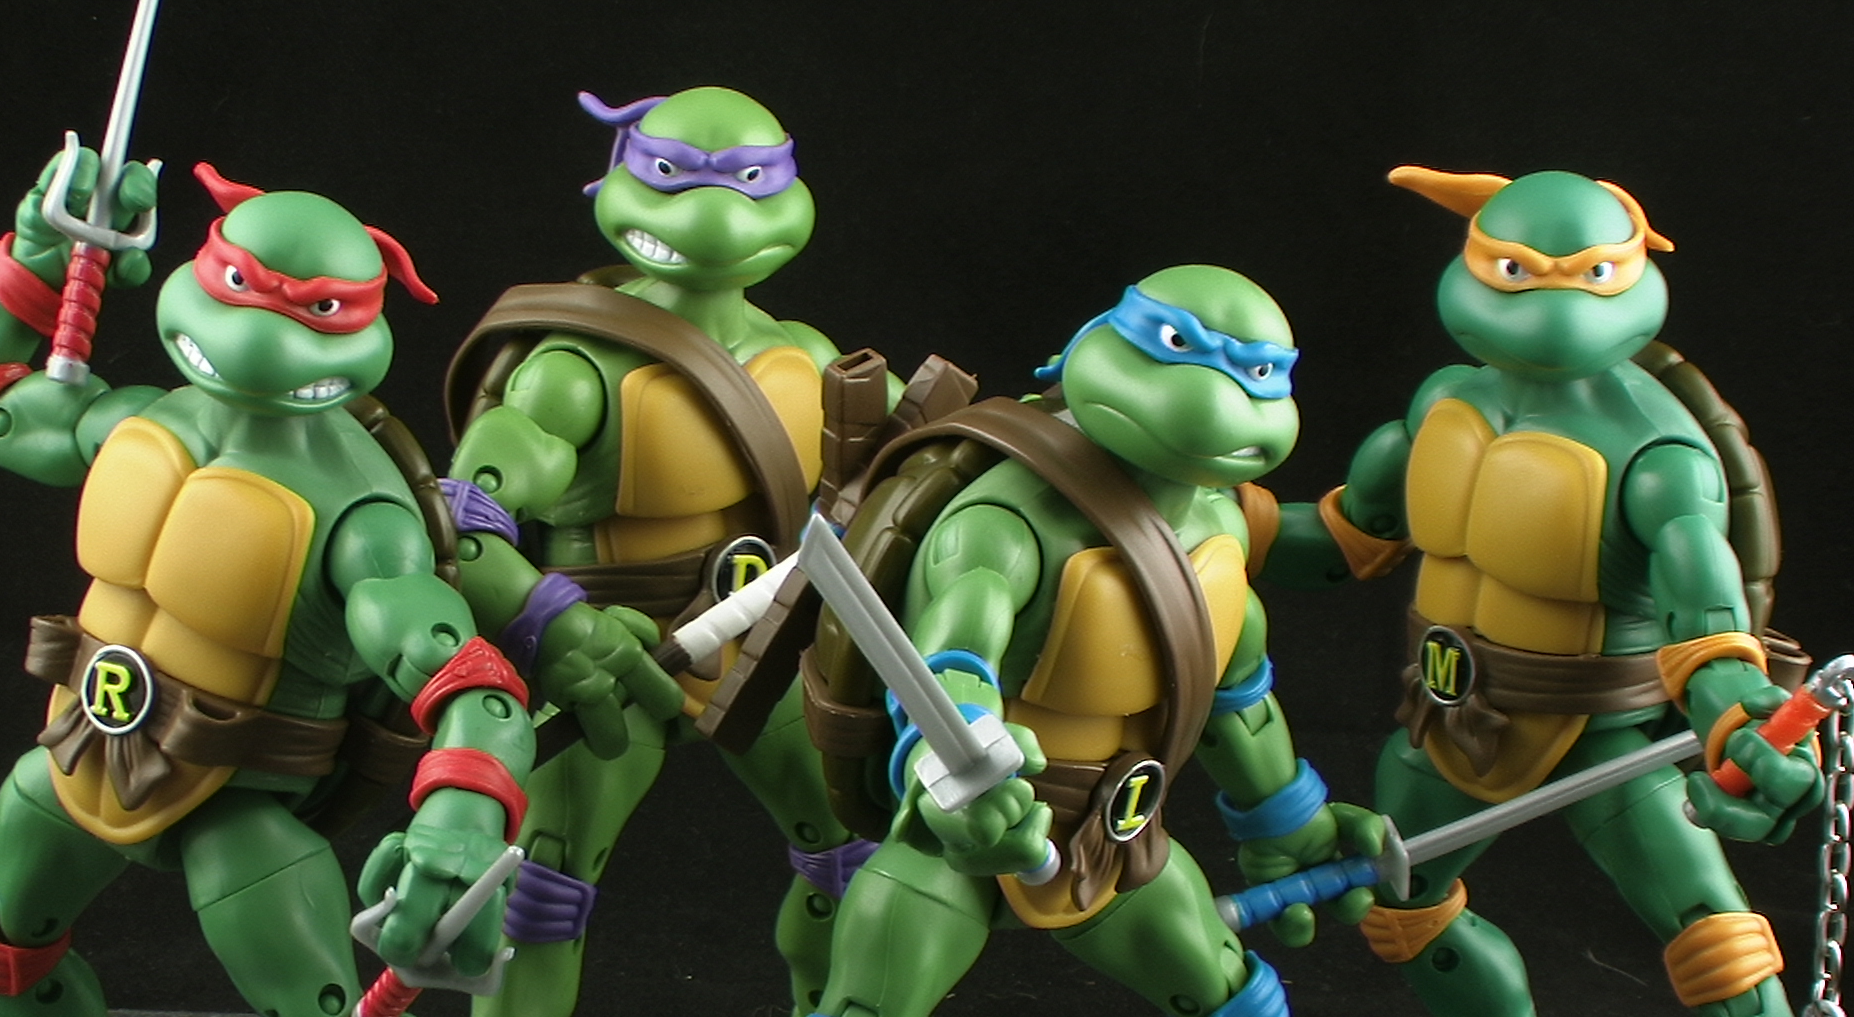 12 Facts About The Teenage Mutant Ninja Turtles You Didn't Know